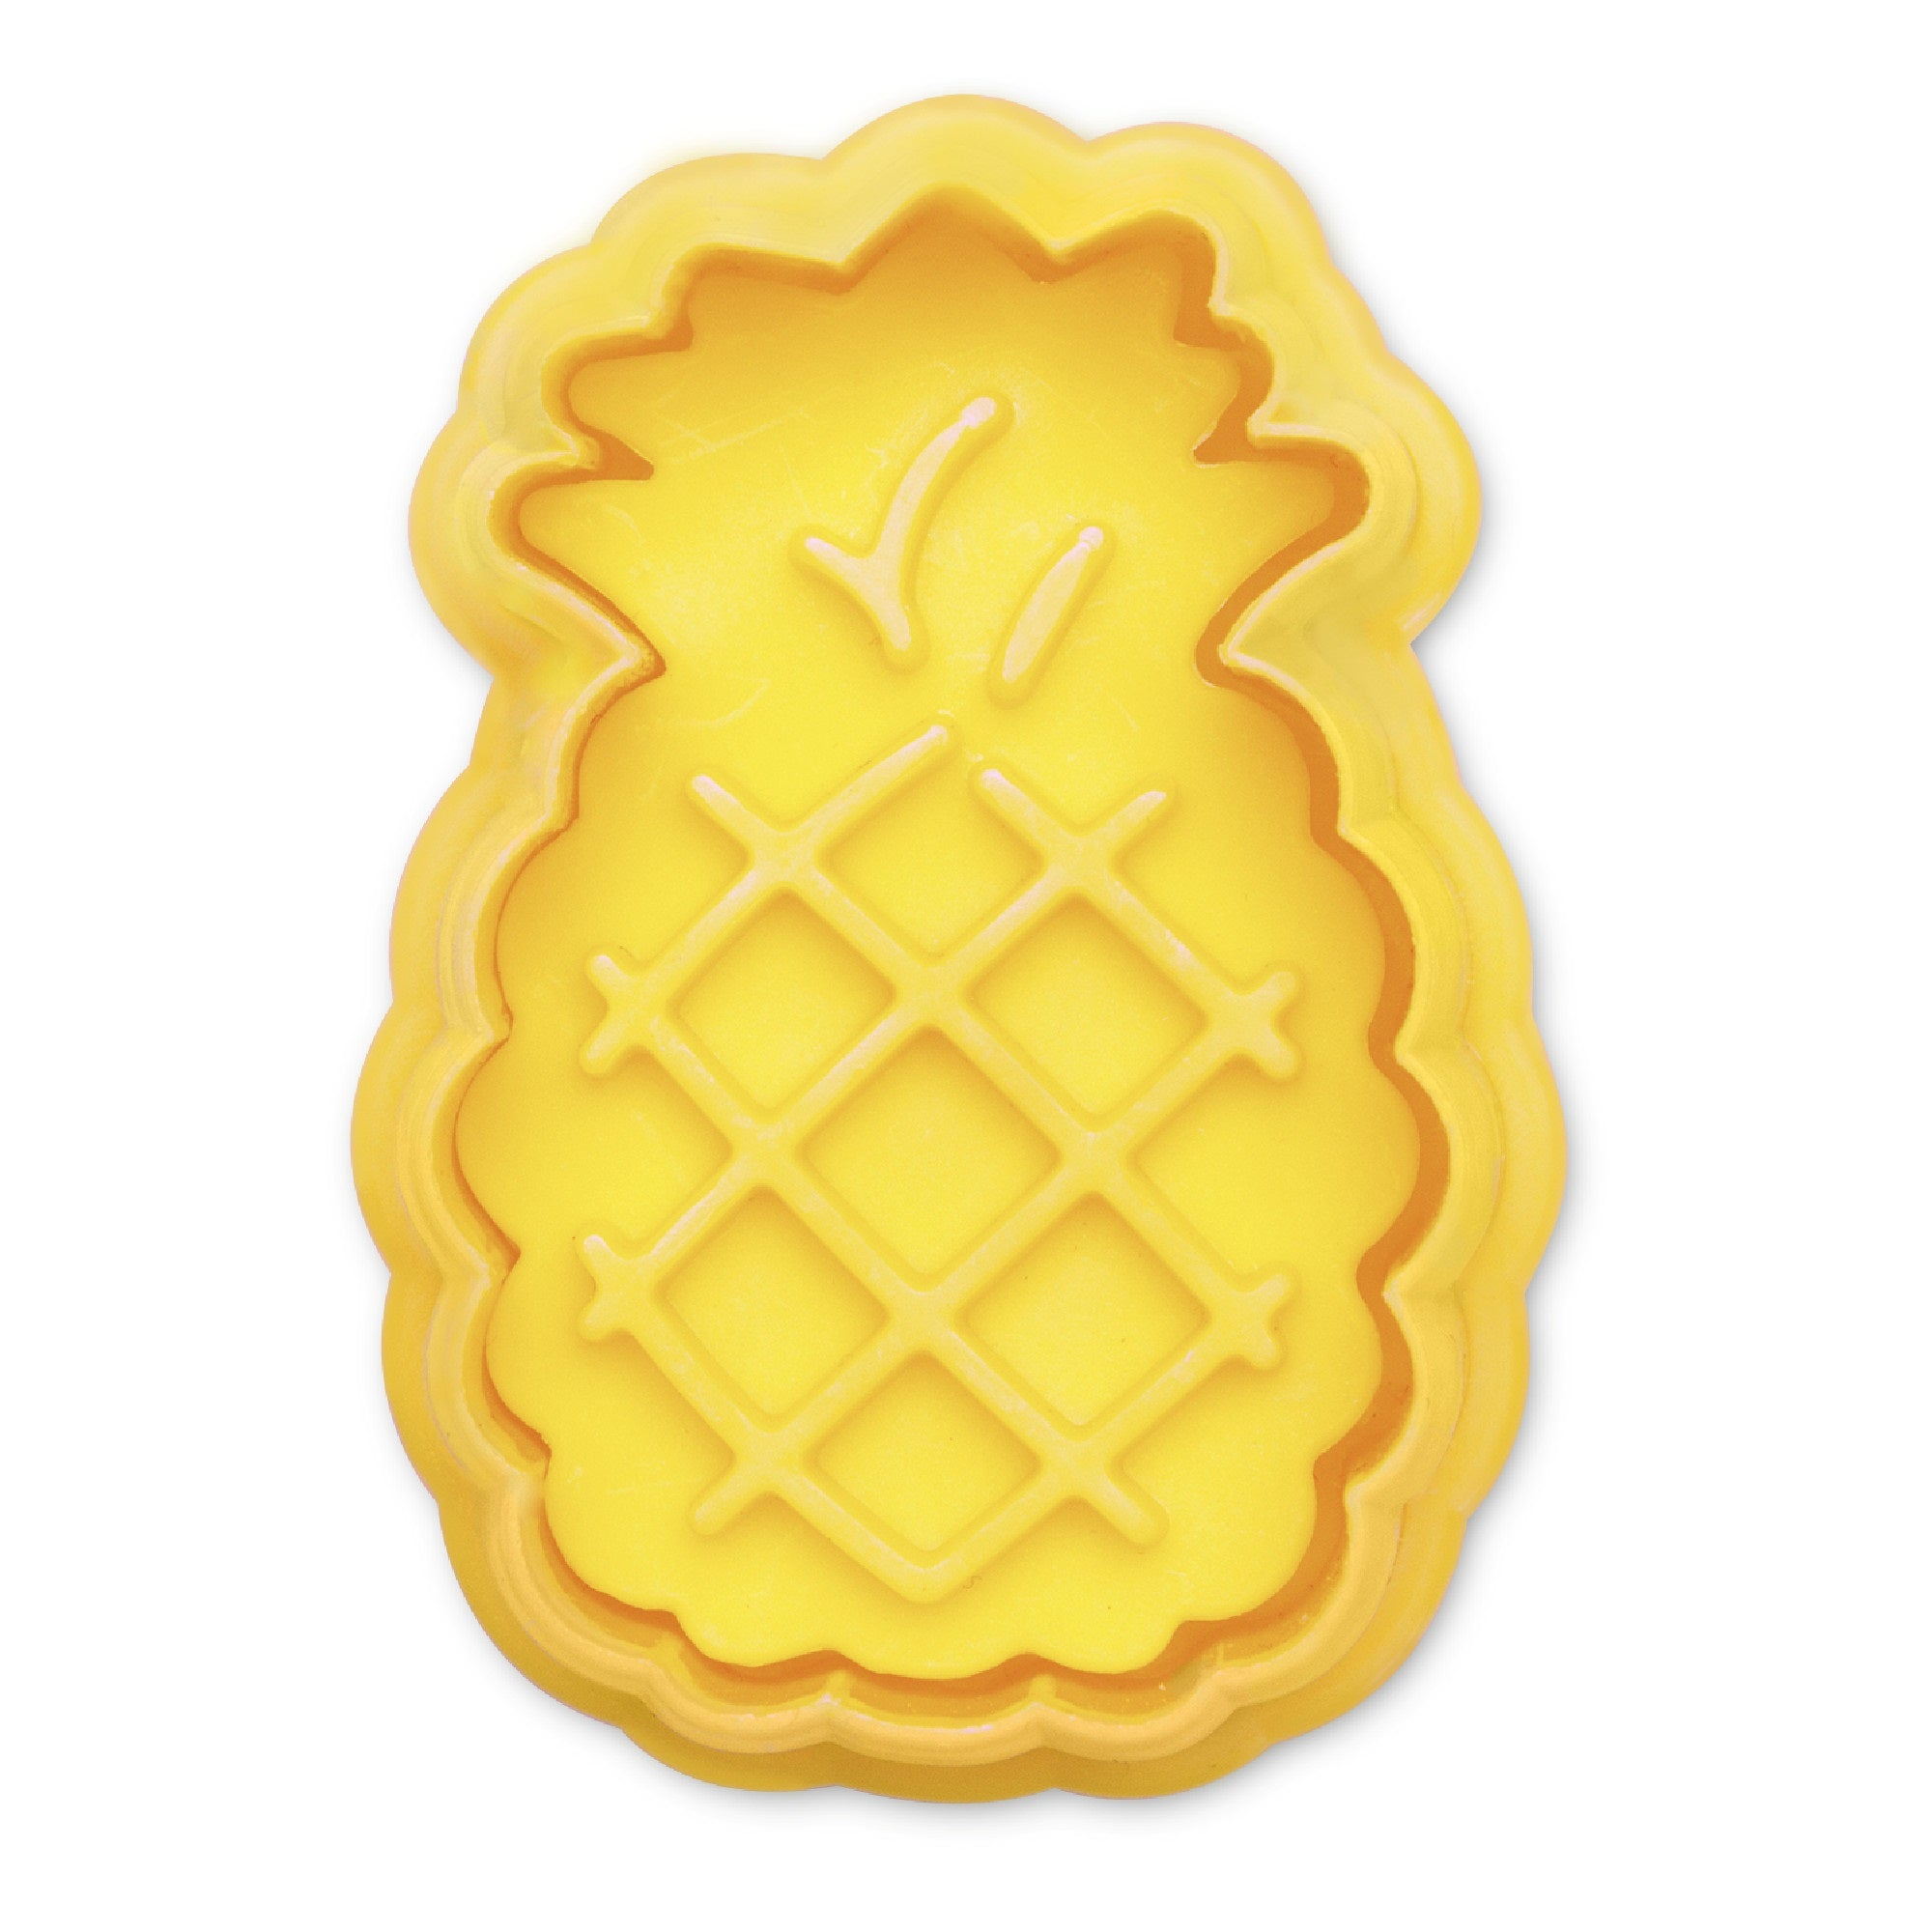 Pineapple Yellow 5cm Plastic Ejector Cookie Cutter